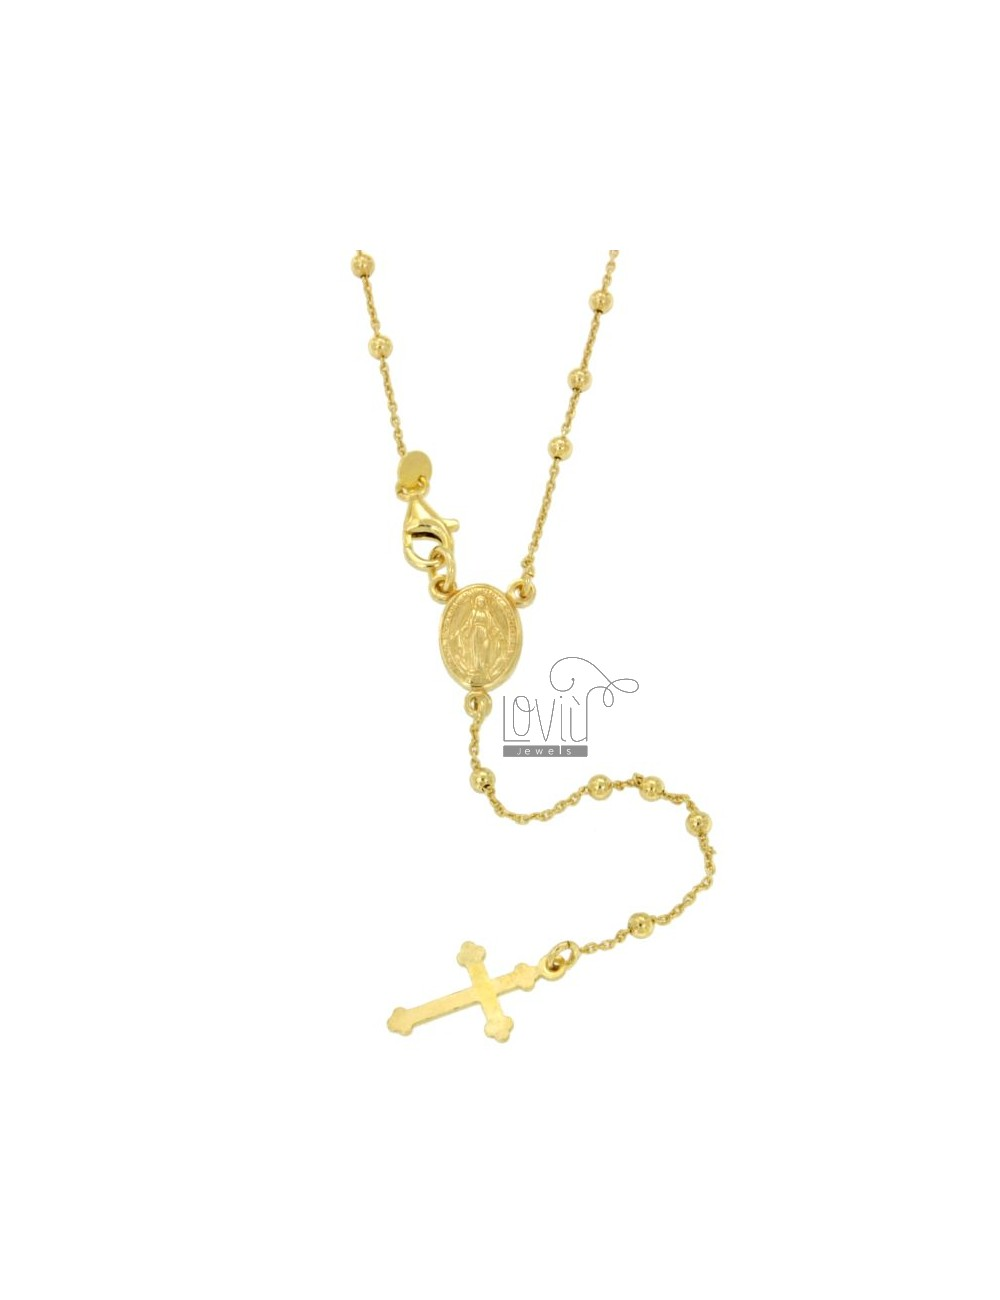 ROSARY NECKLACE CABLE WITH BALL 2.5 CM 45 MM SMOOTH SILVER TIT 925 ‰ GOLD PLATED YELLOW